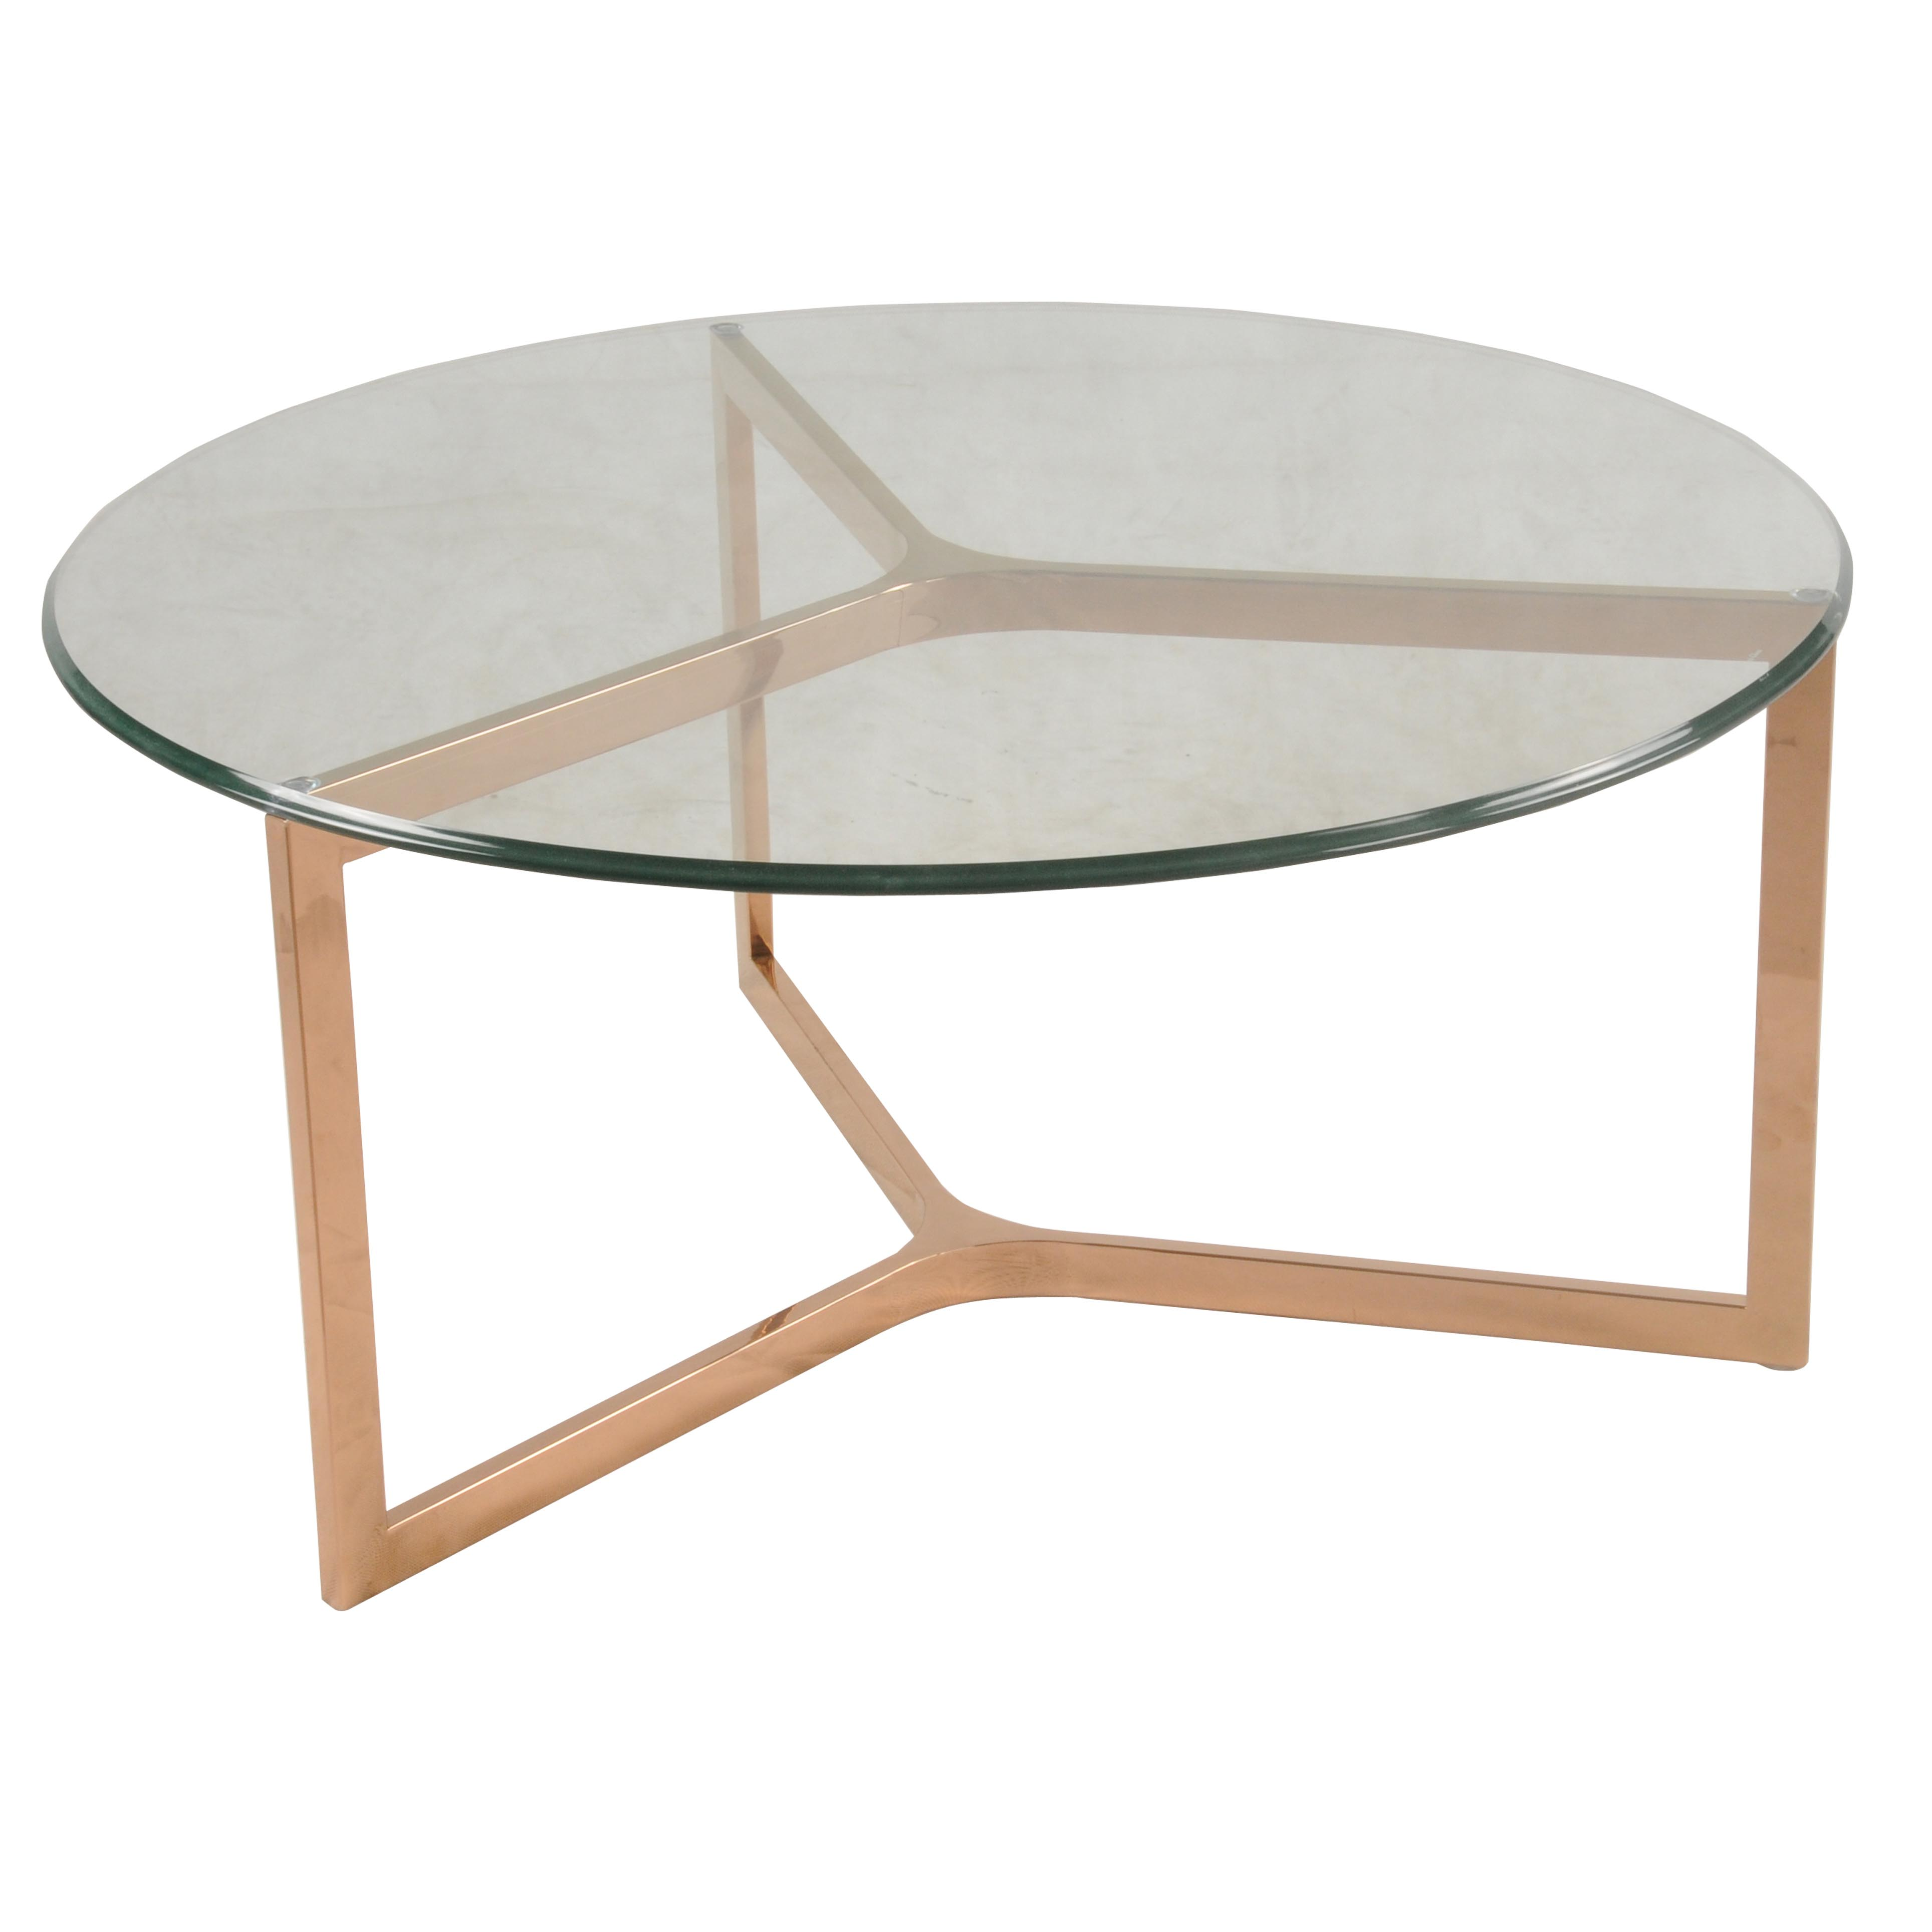 Monza Round Coffee Table Glass Top, Rose Gold